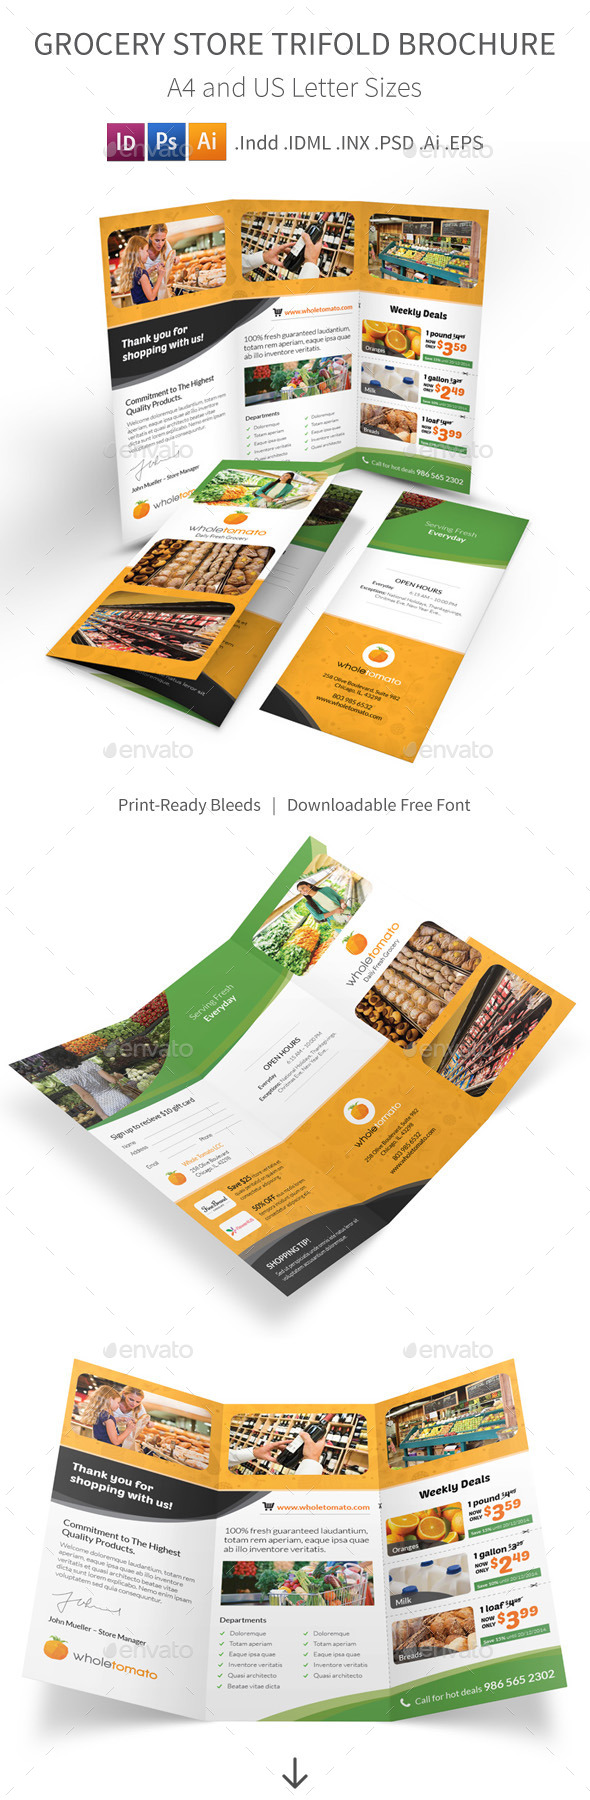 GraphicRiver Grocery Store Trifold Brochure 9717099